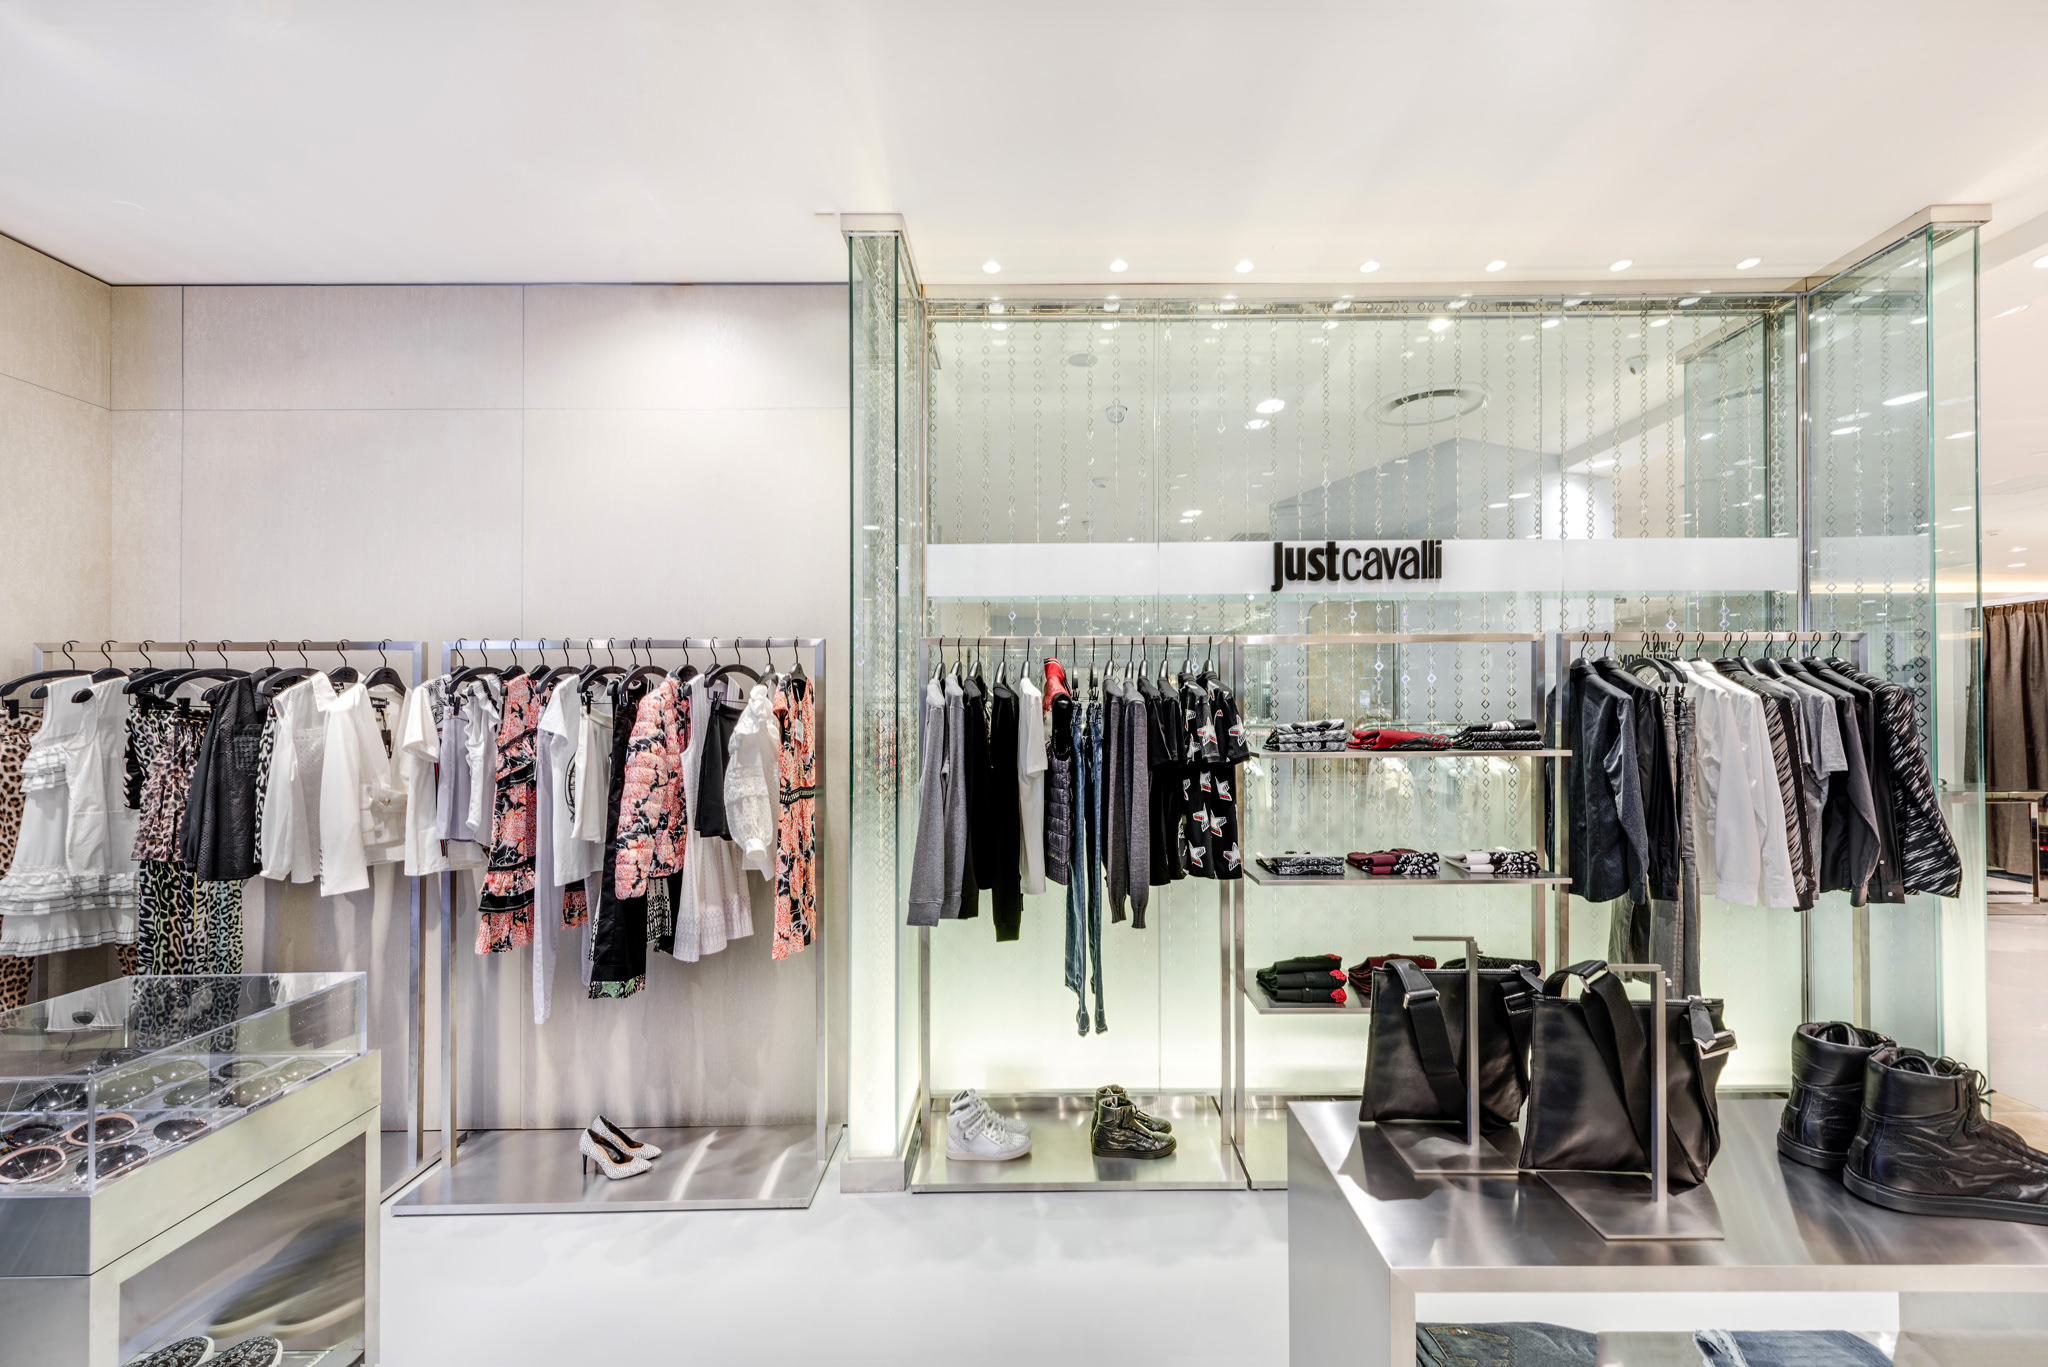 20160729 - Just Cavali - HCM - Commercial - Interior - Store - Retouch 0009.jpg